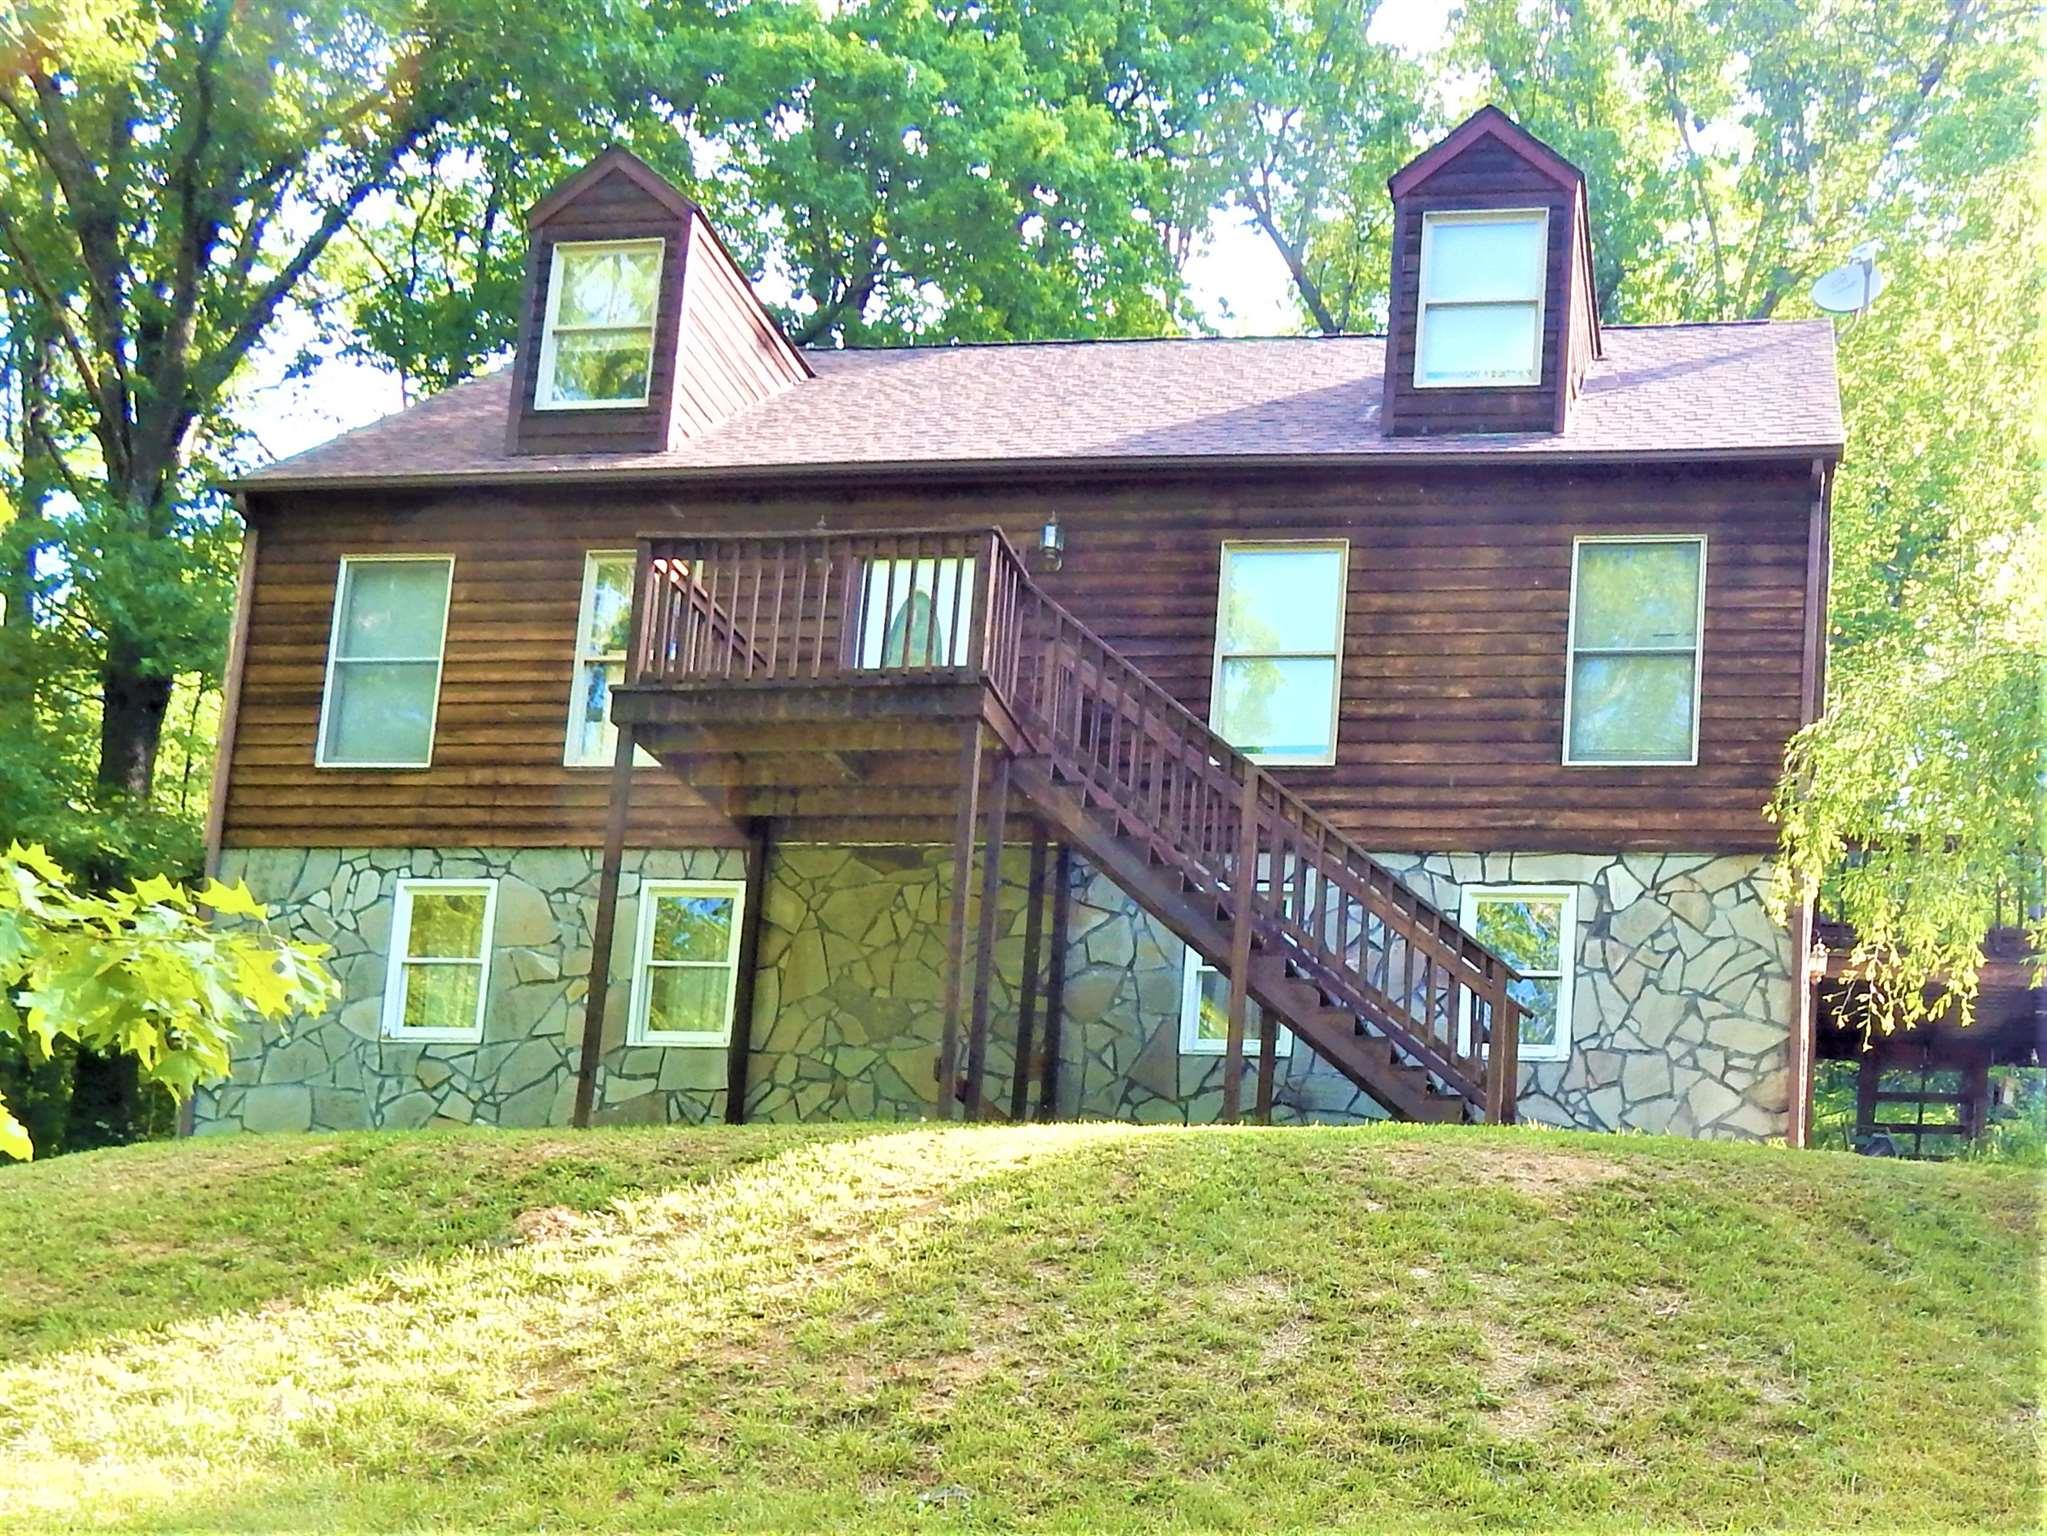 Looking for a secluded location but still close to town. This home offers 6.5 acres only five minutes from downtown Christiansburg. The home has just been fully stained on the outside to include all the decks and the roof was put on in 2018. On the main level enjoy a large living to entertain in. There is a eat in kitchen with tons of room that has a new dishwasher and all stainless steel appliances. Also on the main are two of the bedrooms. On the upper level you will find the two other huge bedrooms that has plenty of space for kids to sleep and play. In the basement you find a very large family room and bonus room. Outside is a beautiful country setting that offers seclusion.